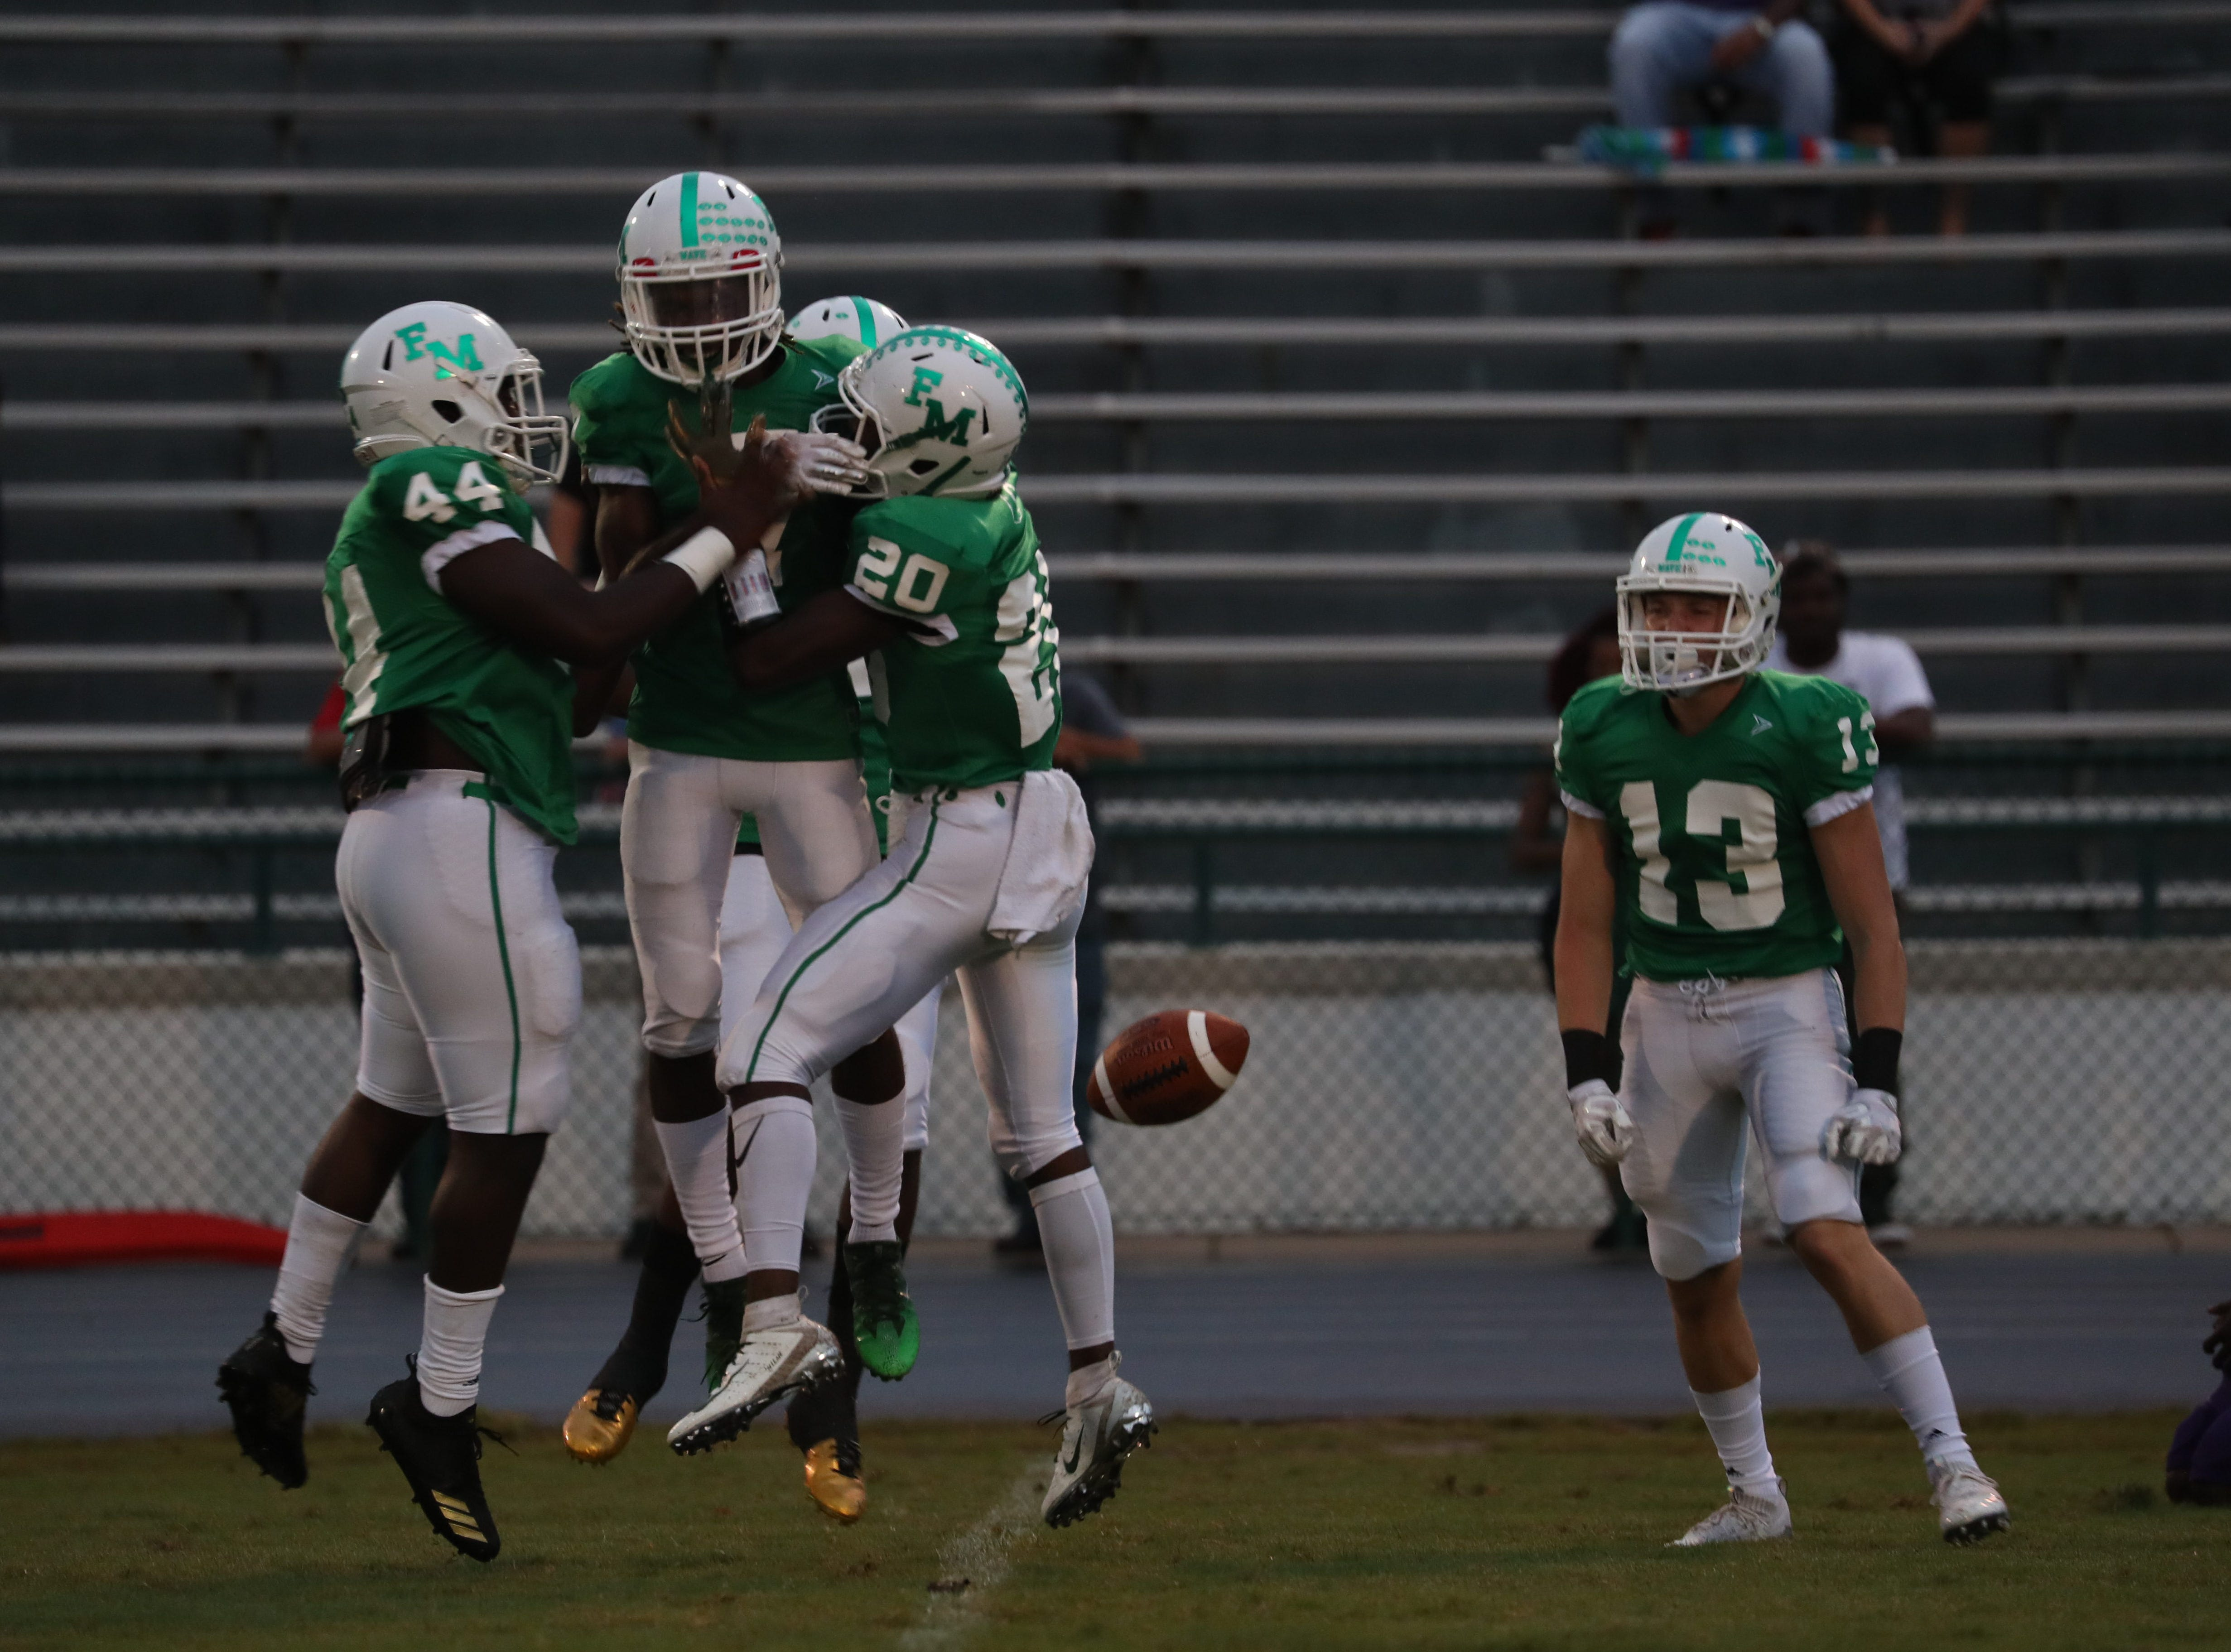 Fort Myers takes on Cypress Lake in high school football on Friday, September 7, 2018, at Fort Myers High School. Fort Myers won 42-27.